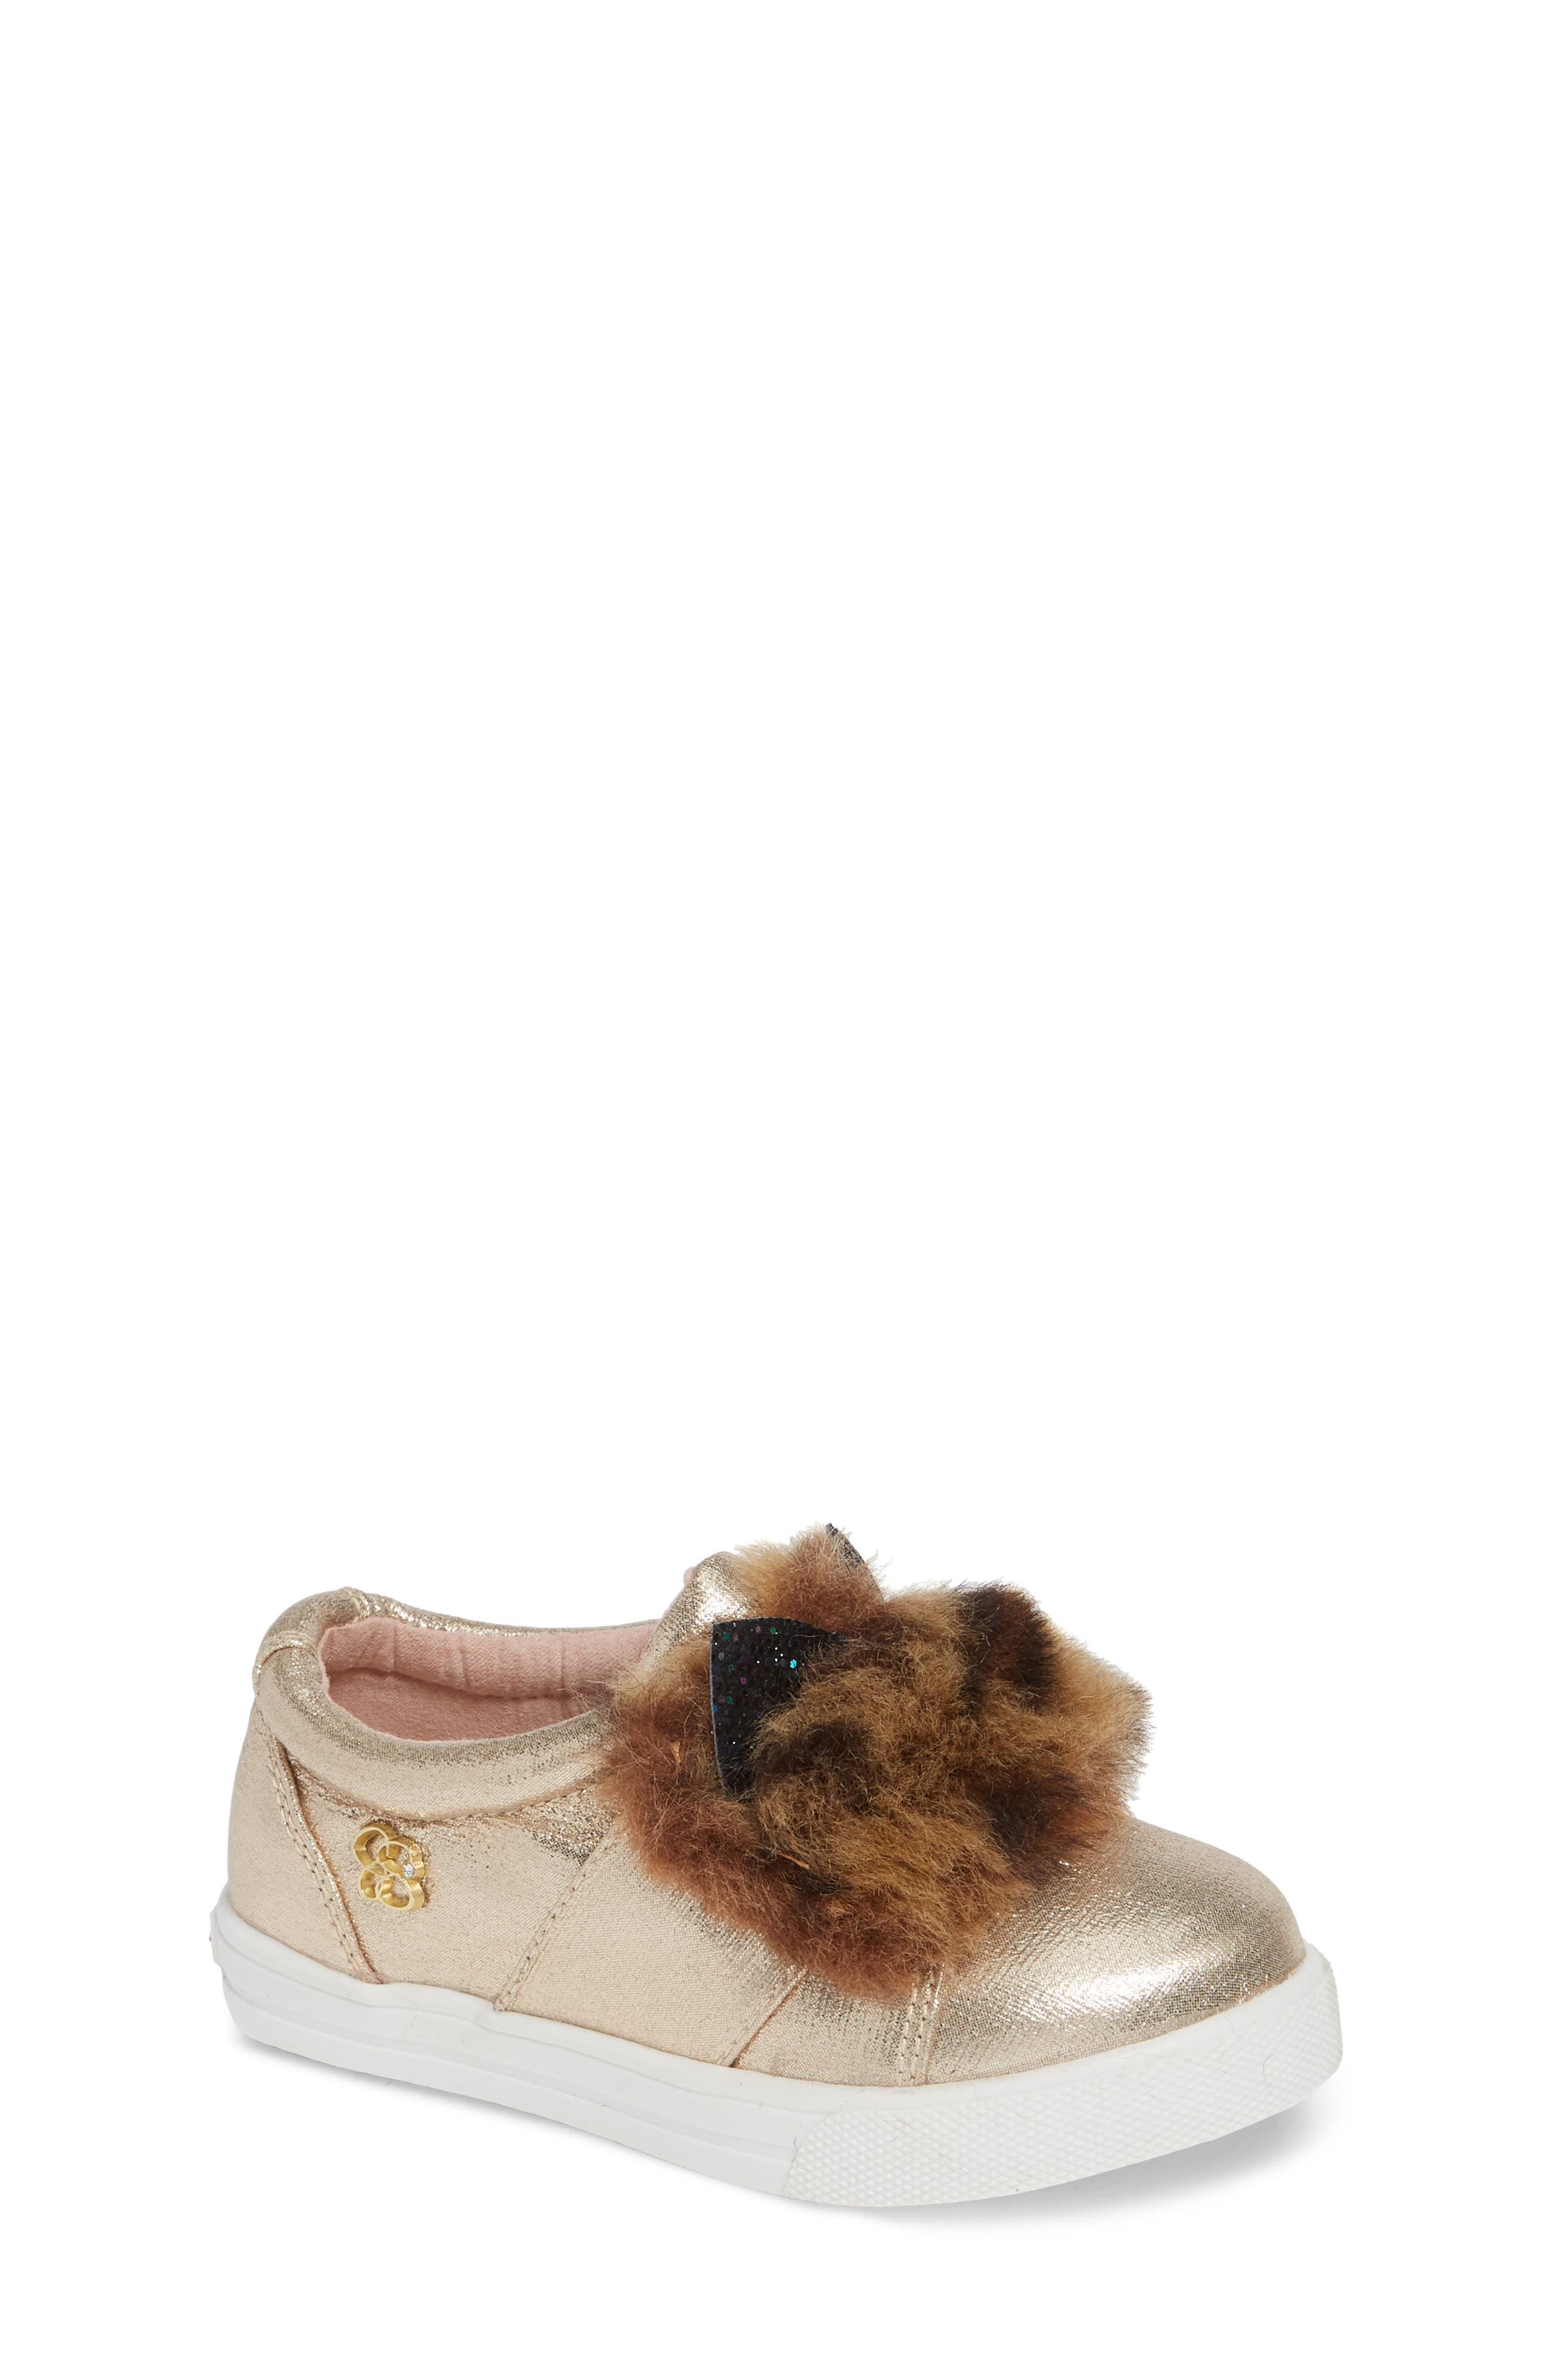 Faux Fur Slip-On Metallic Sneaker,                         Main,                         color, GOLDEN METALLIC